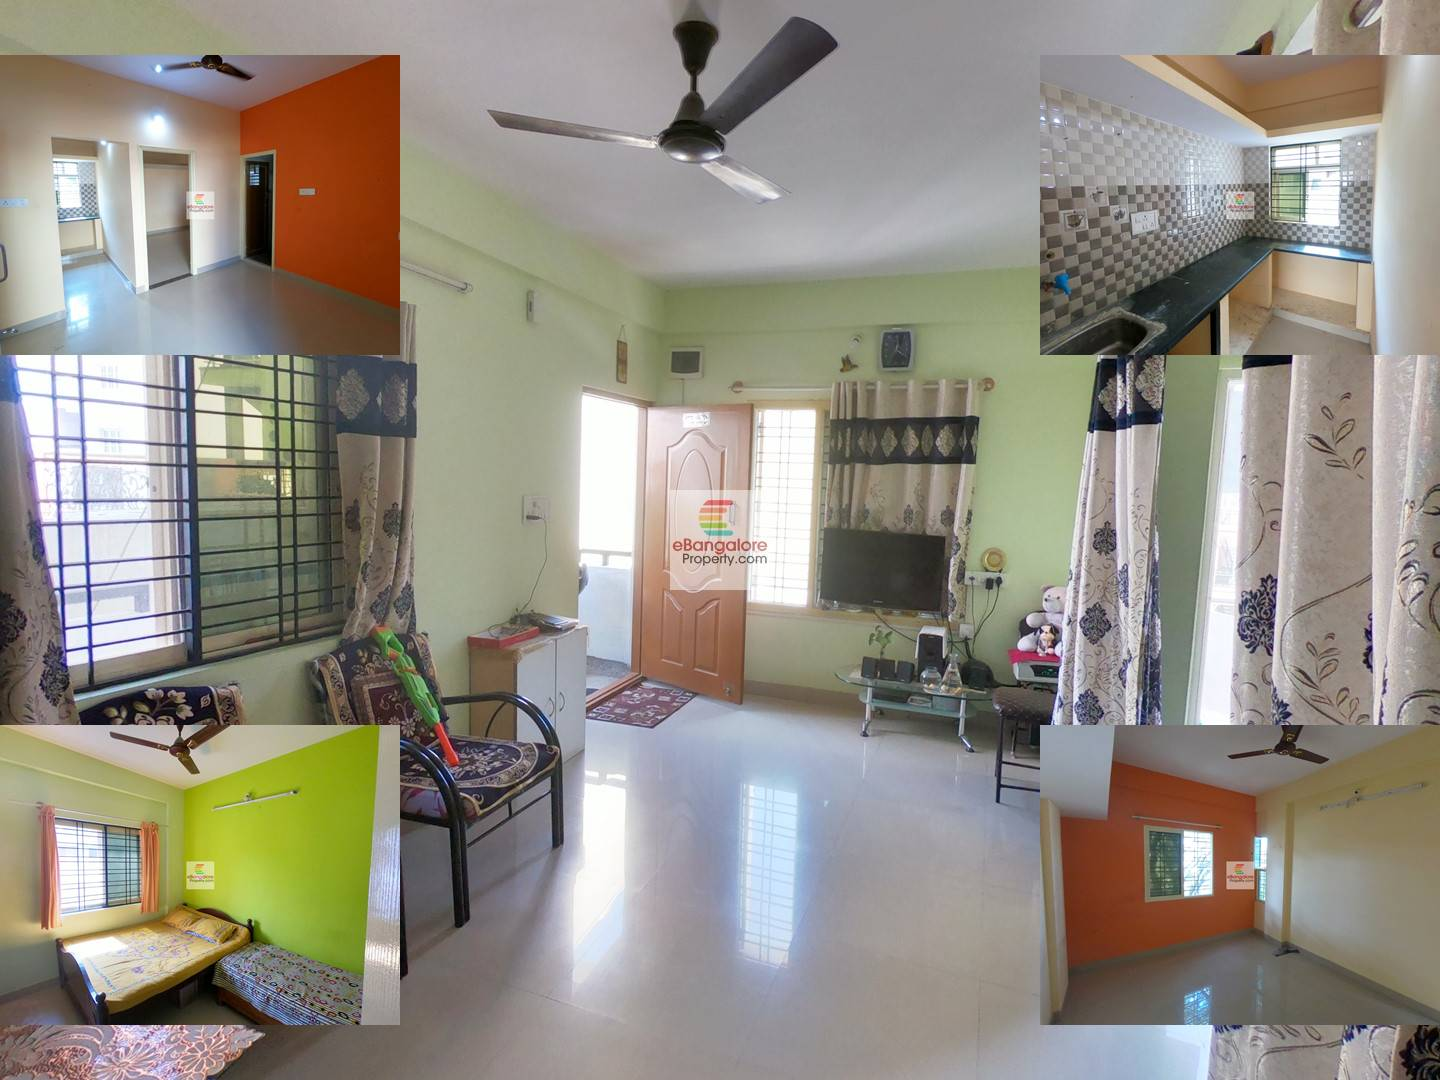 HSR Layout Ext A Khata – 10 Unit Rental Income Building For Sale on 30×50 – Near Metro Station